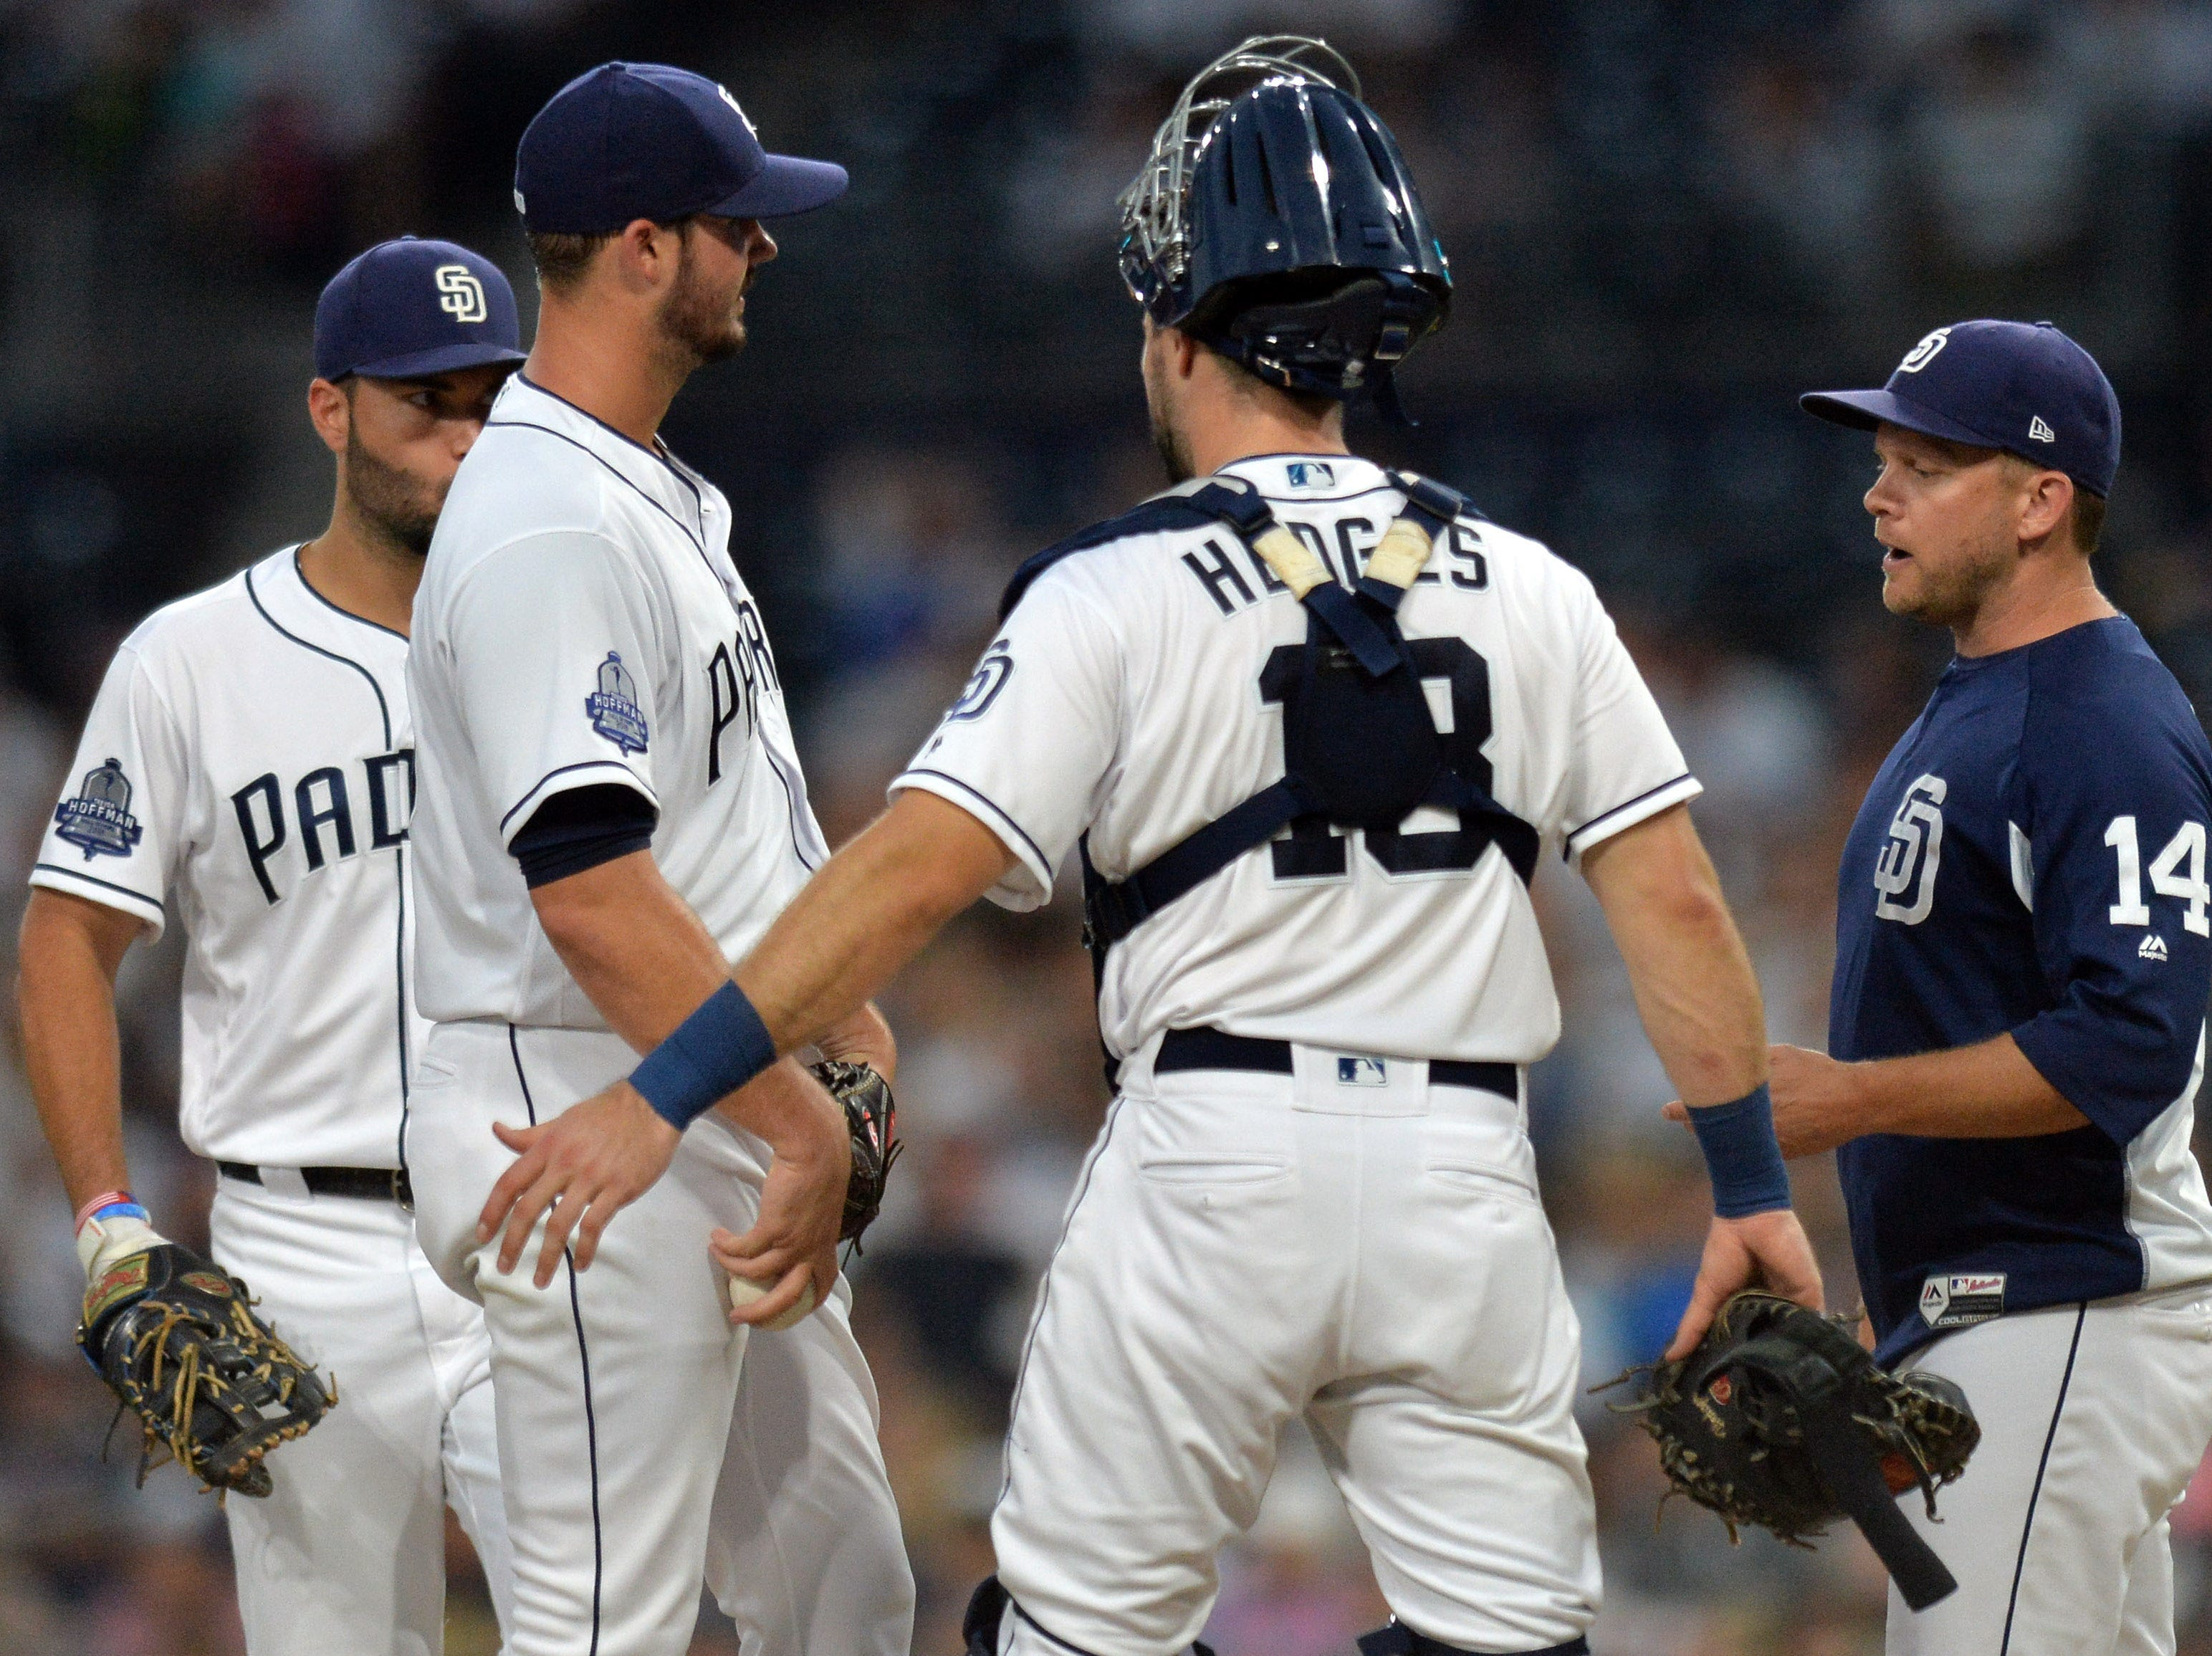 Aug 16, 2018; San Diego, CA, USA; San Diego Padres manager Andy Green (14) takes San Diego Padres starting pitcher Jacob Nix (one from left) out of the game after giving up five runs in the first inning against the Arizona Diamondbacks at Petco Park. Mandatory Credit: Jake Roth-USA TODAY Sports